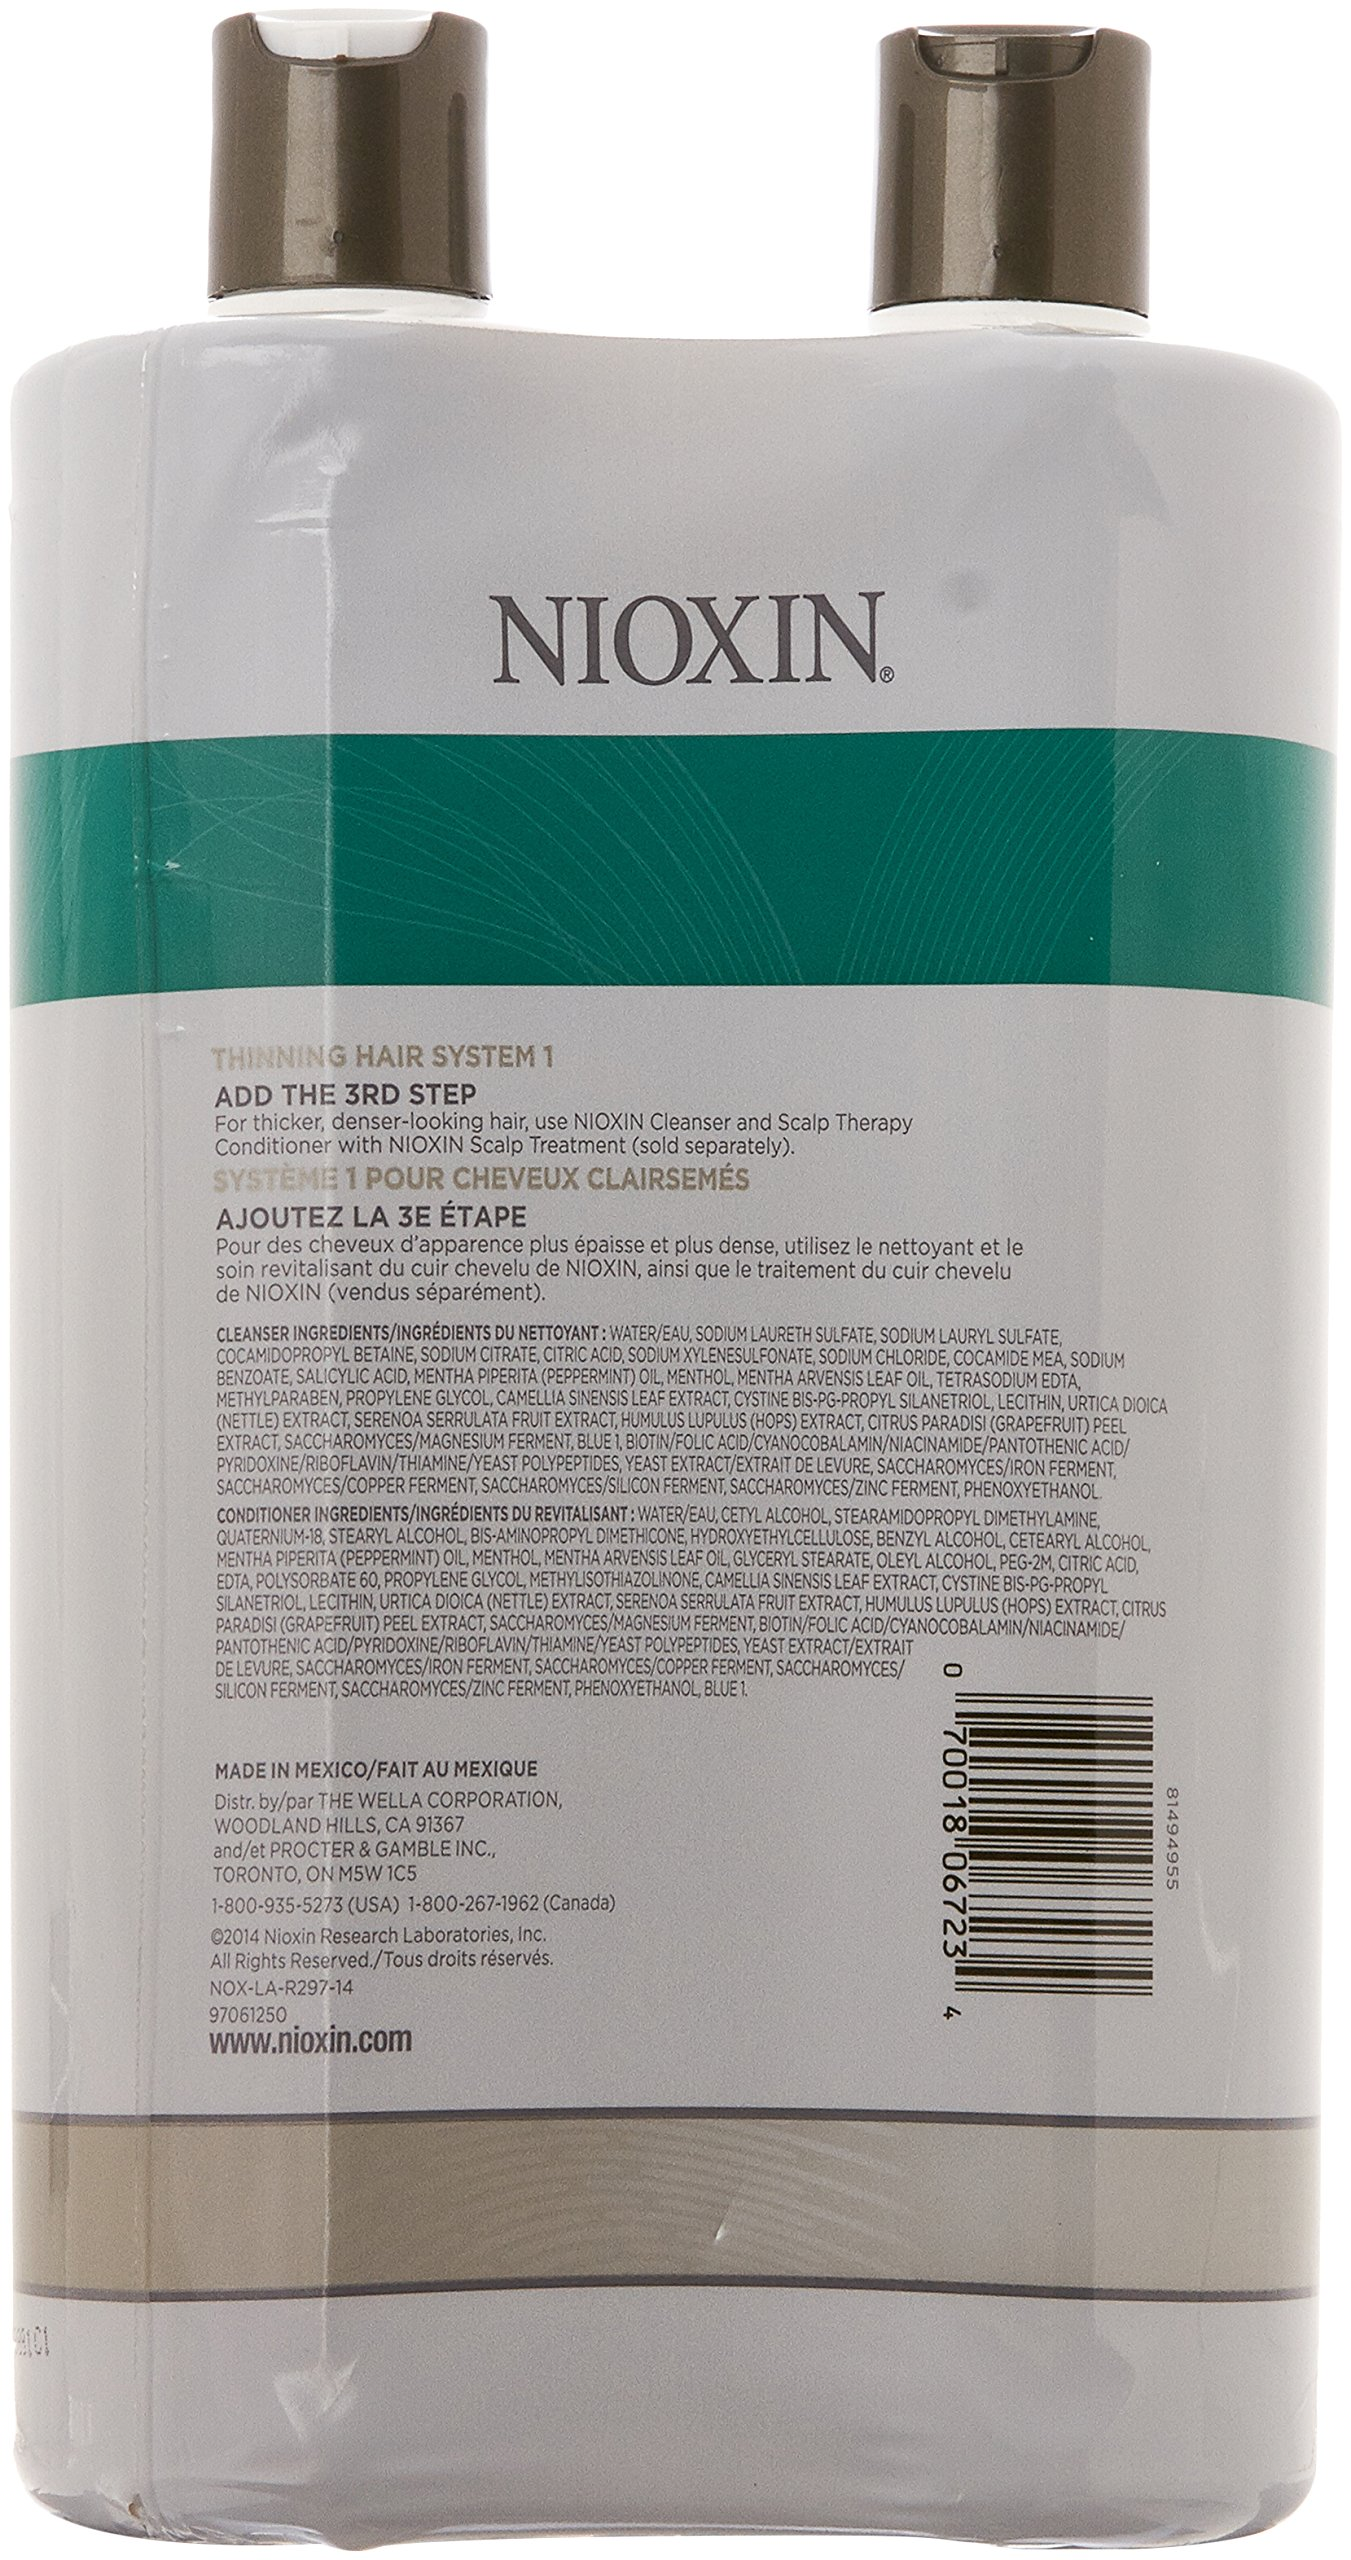 Nioxin System 1 Cleanser and Scalp Therapy Conditioner, 33.79 Ounce (Pack of 2)